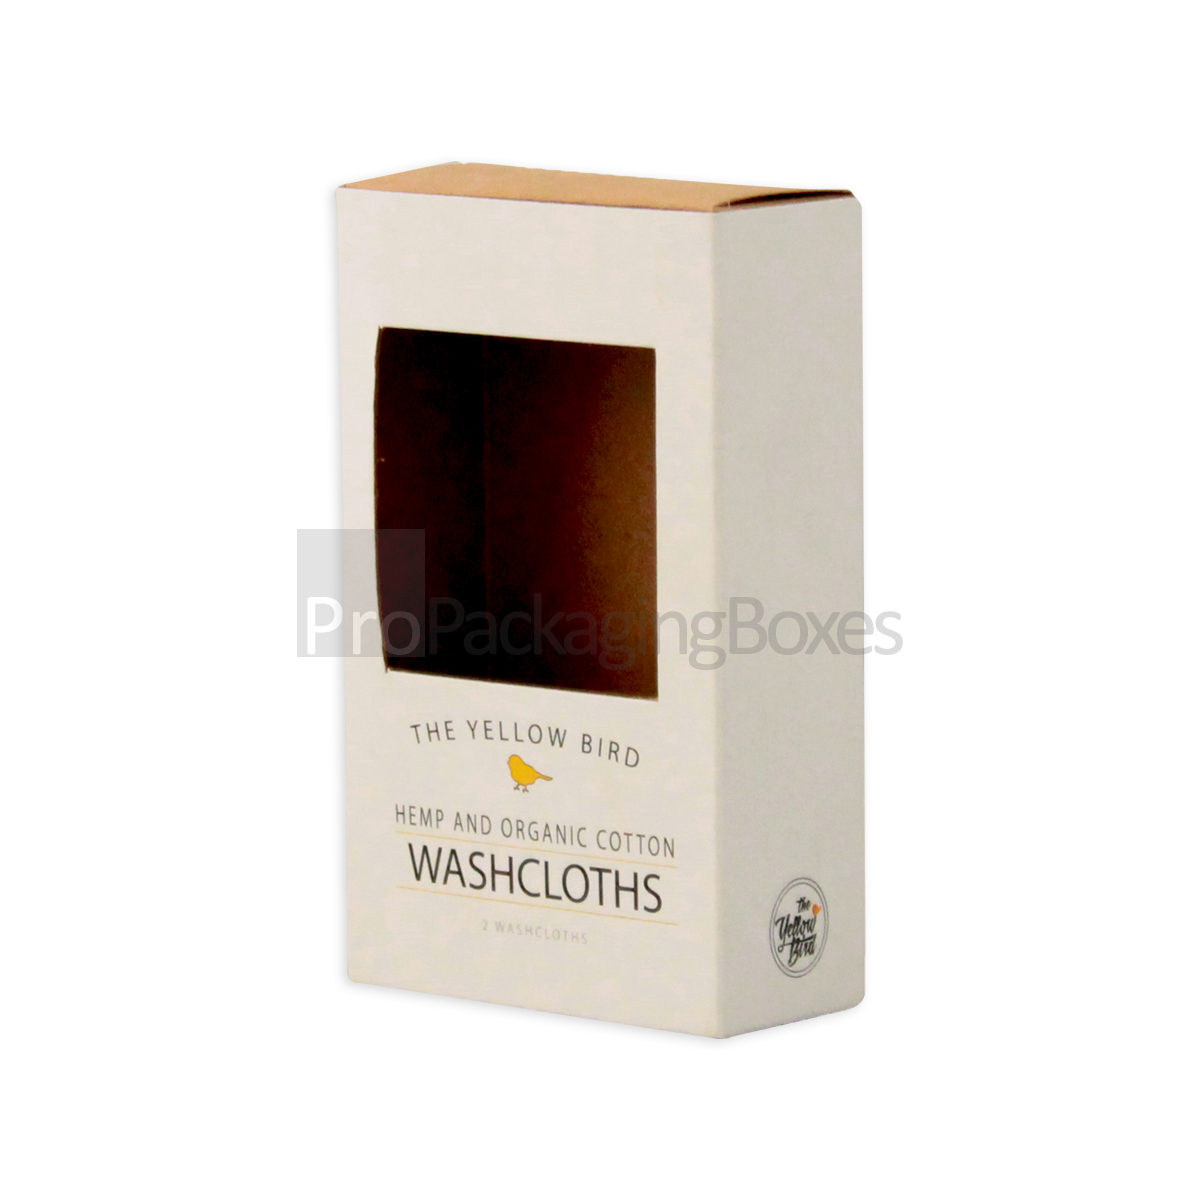 Custom Printed Window Packaging Boxes Suppliers-05